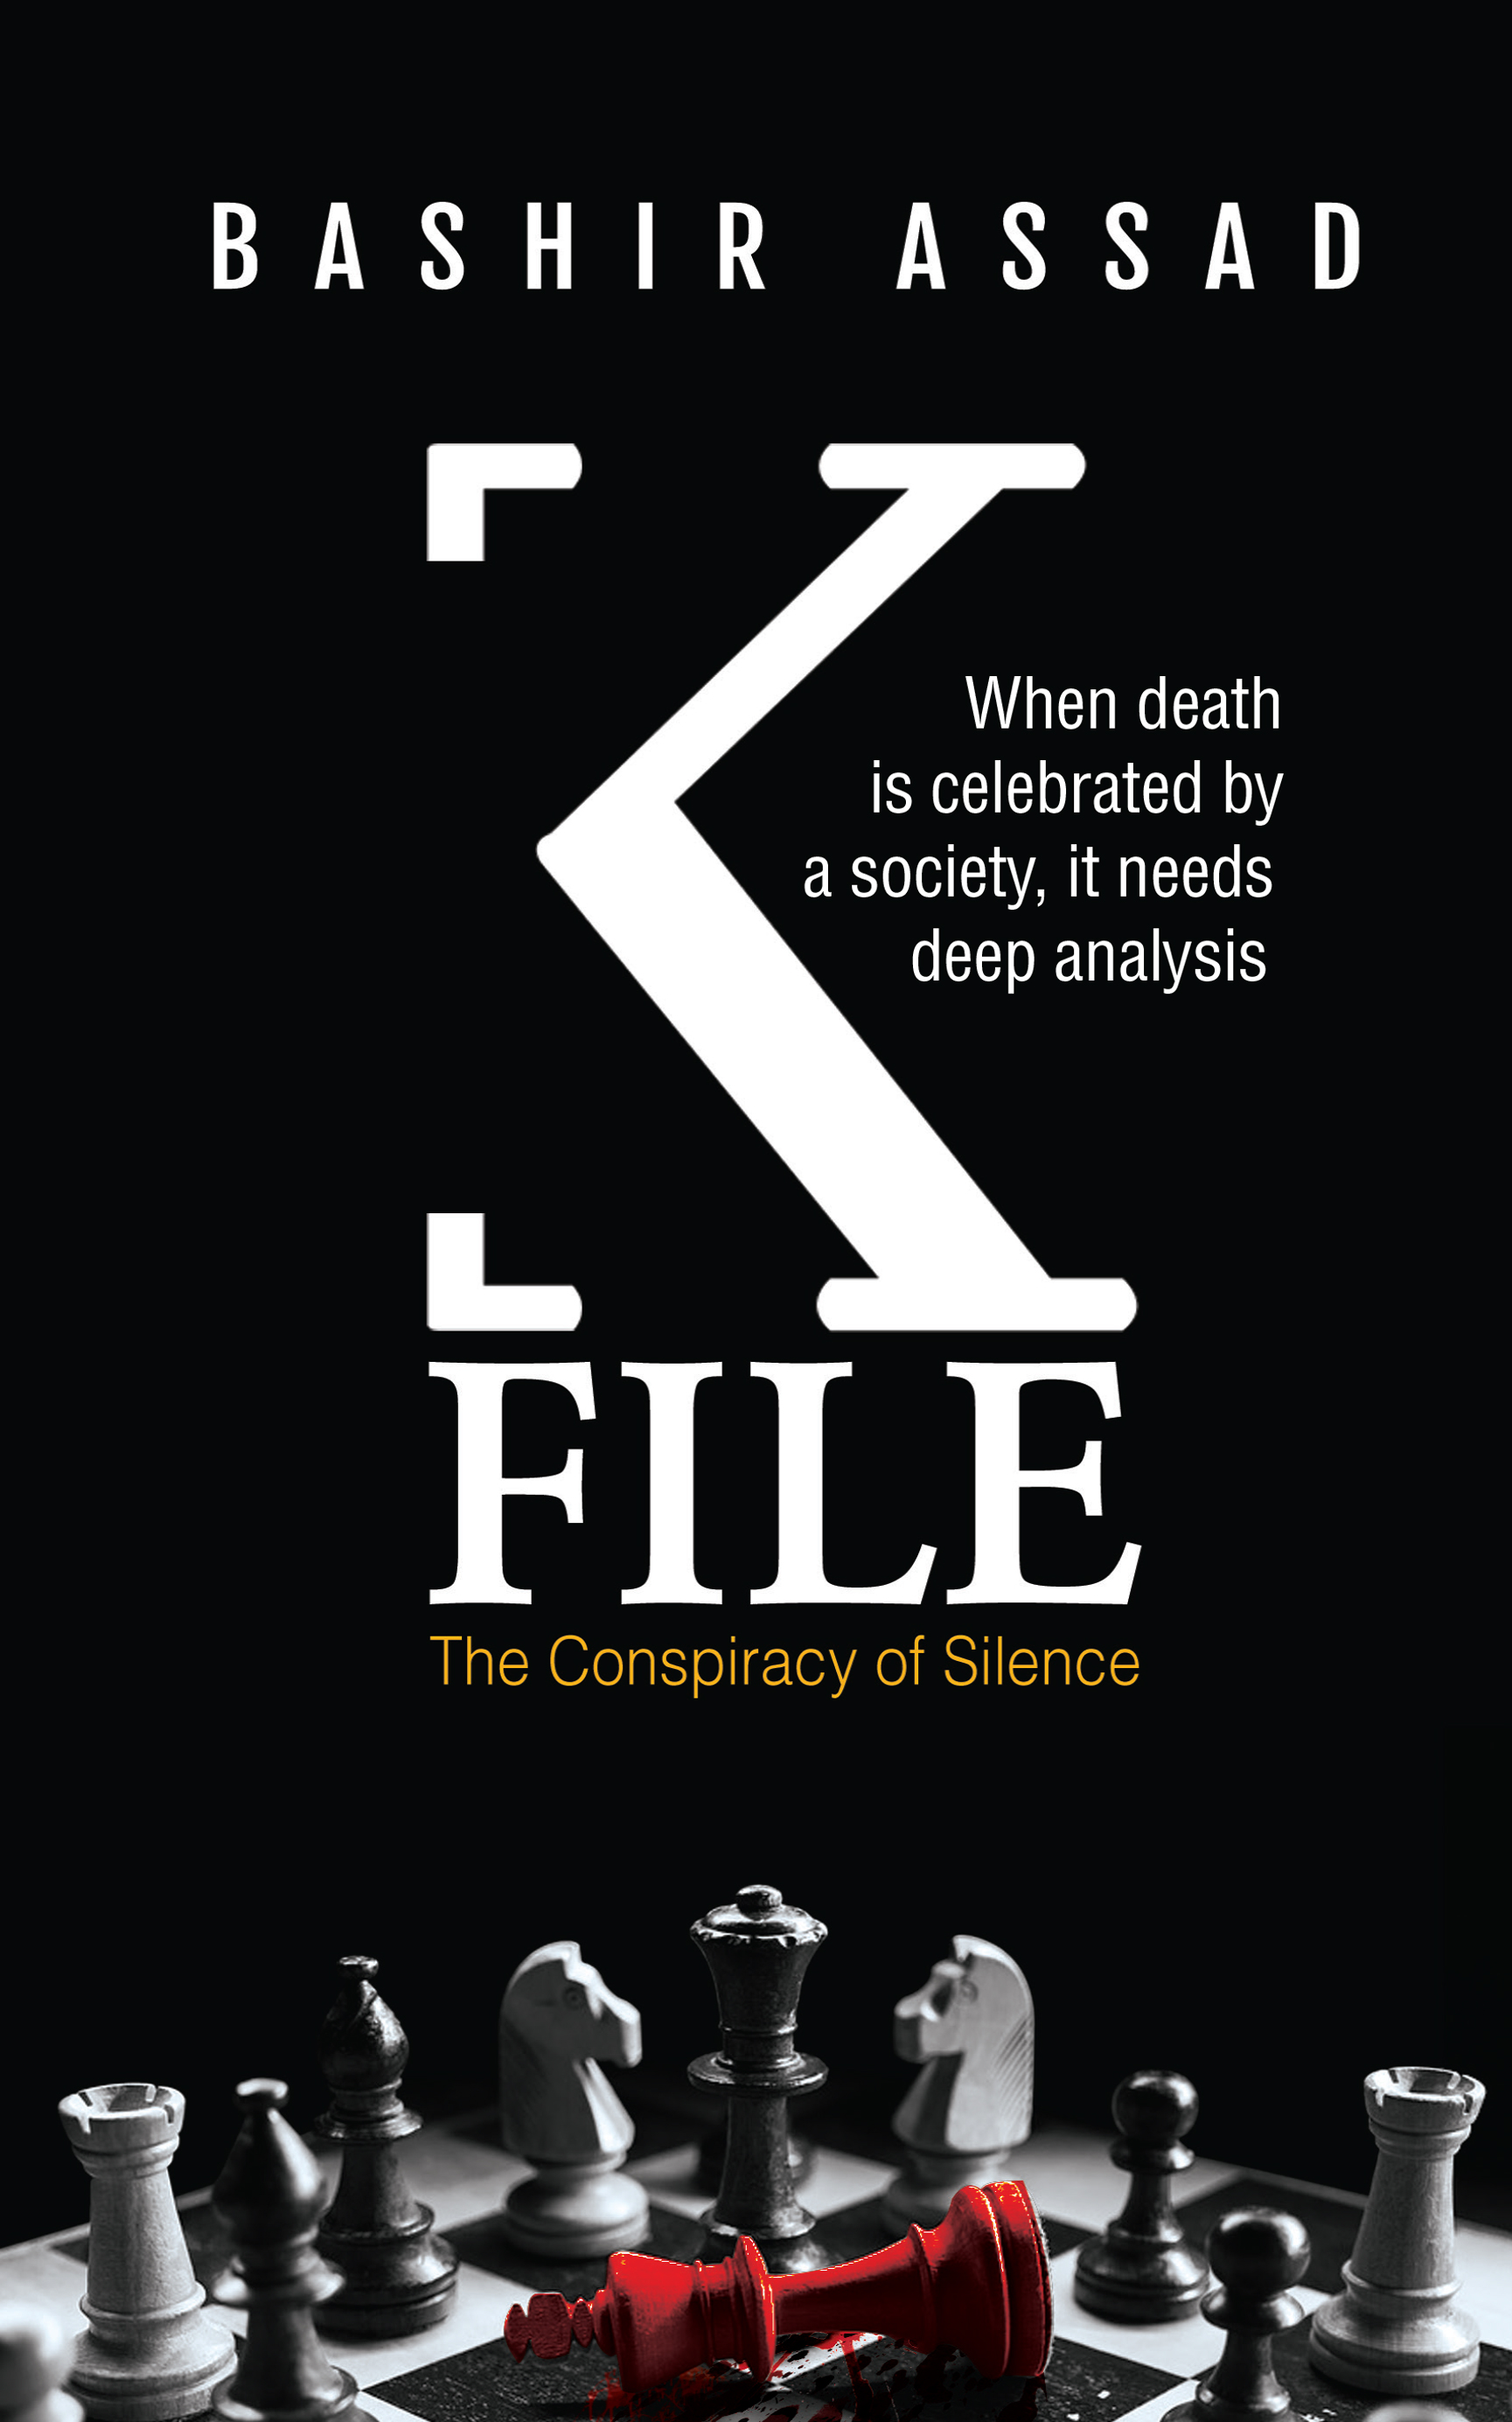 K File The Conspiracy of Silence